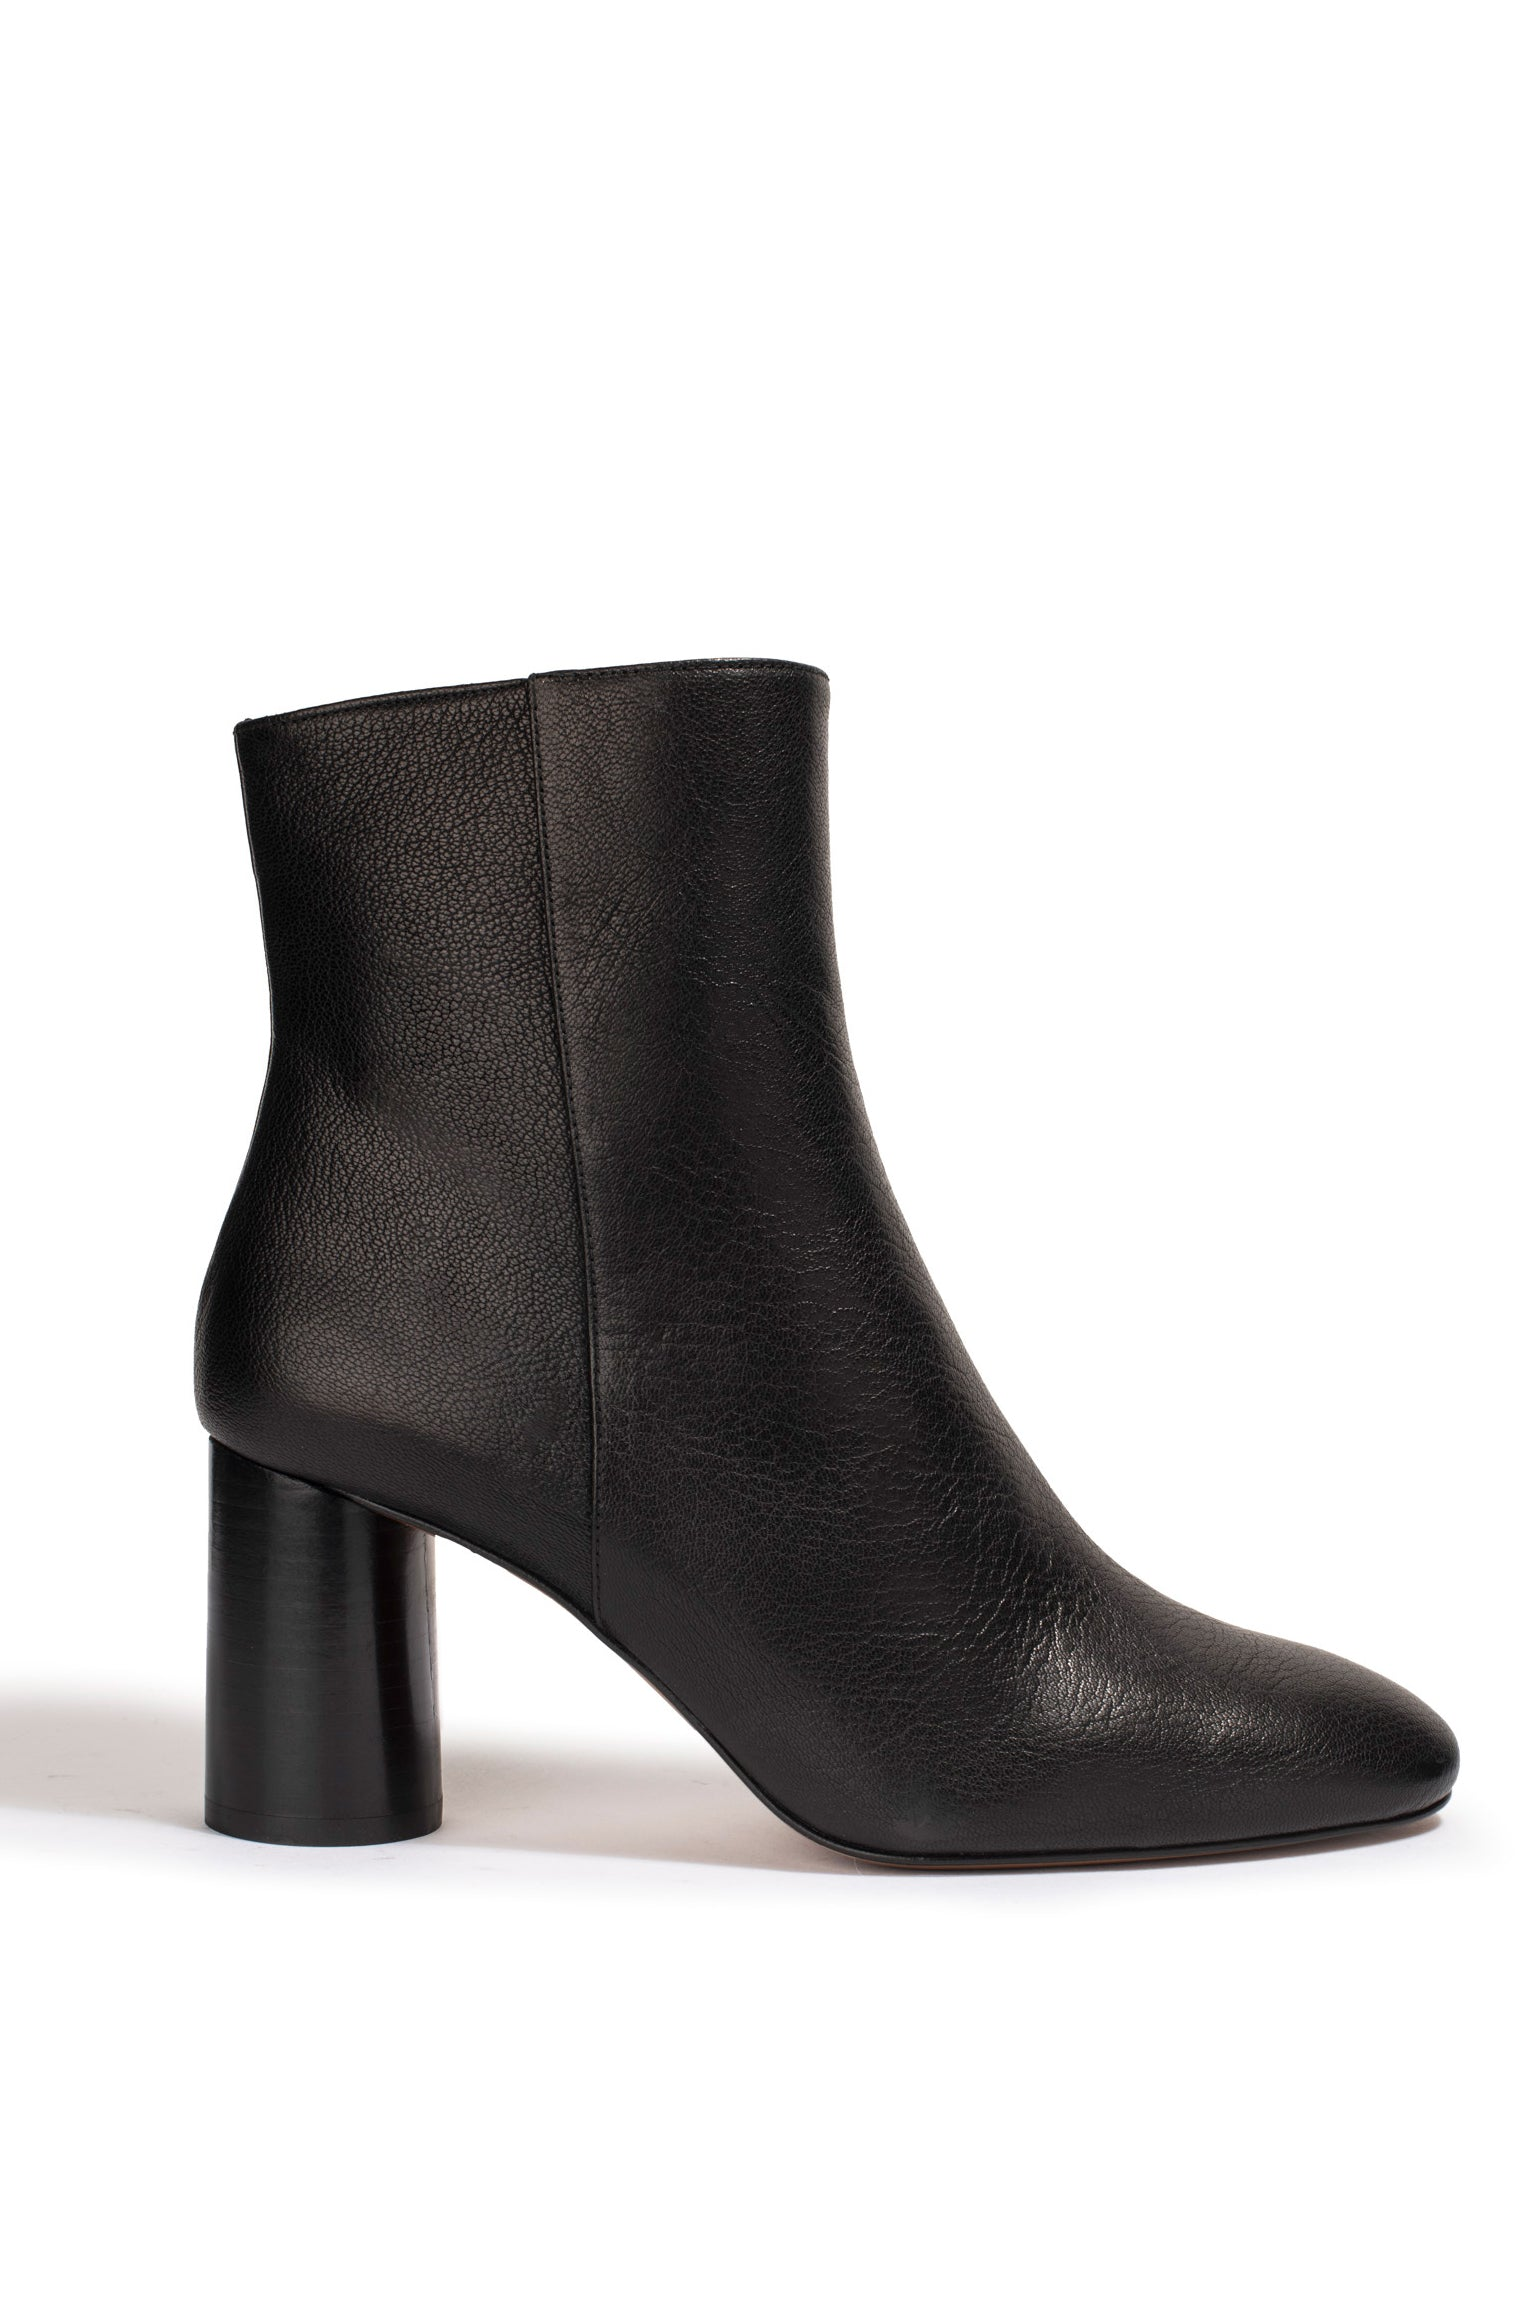 Bottines Ripon Maga Noir - Anaki Paris